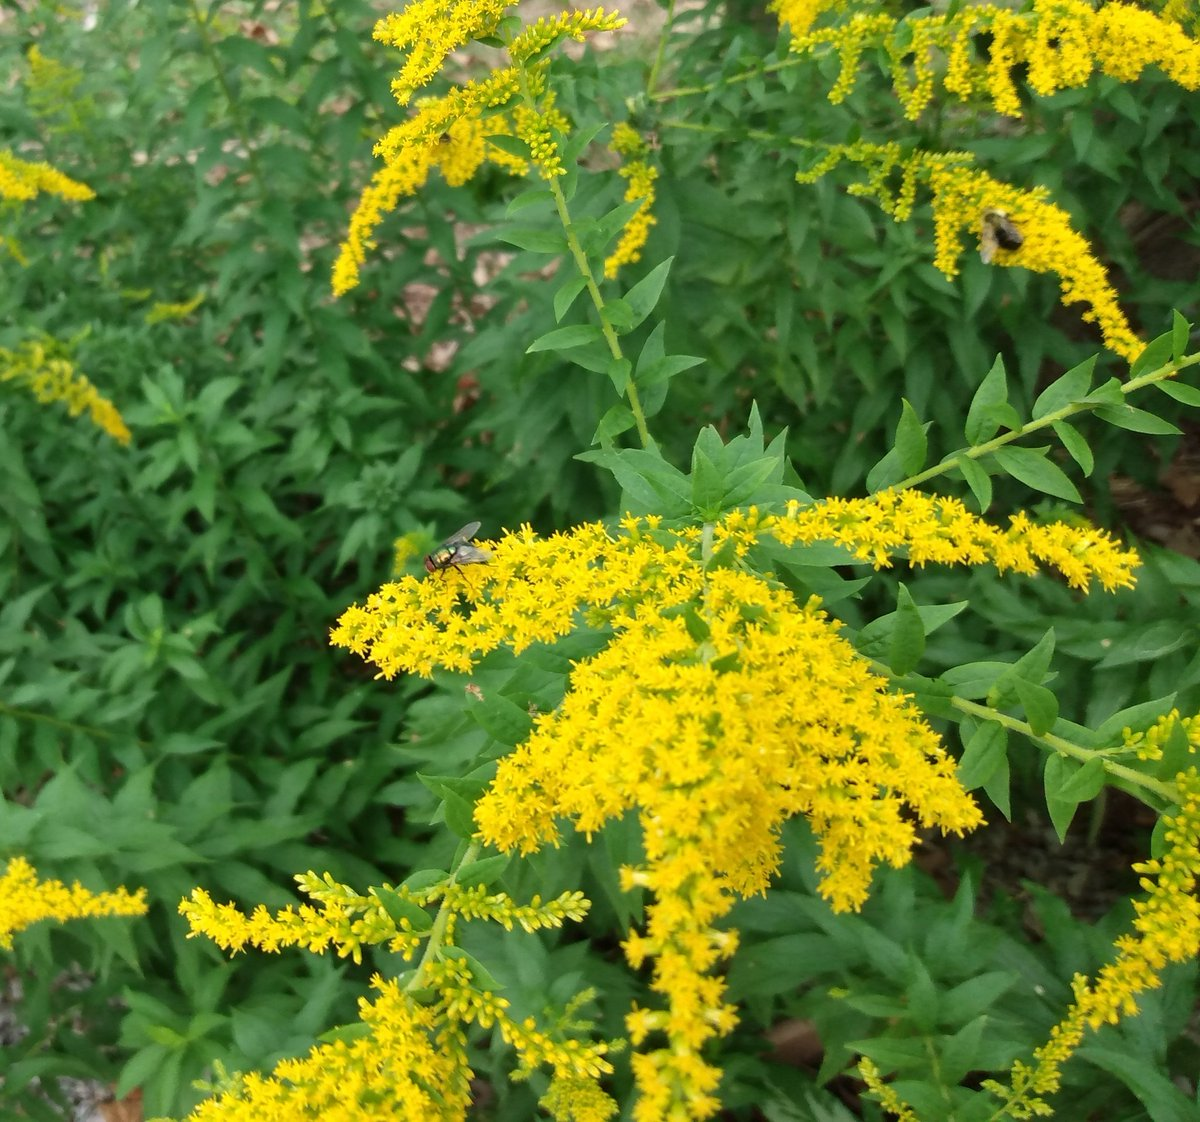 Lovely native plants like goldenrod (solidago canadensis) can often be mistaken for weeds before they bloom. But pulling them out takes away prime habitat for hundreds of insects, including native pollinators! #pollinators #nativeplants #nativeplantgarden #lowmaintenancelandscape https://t.co/9oBbKo1L0i